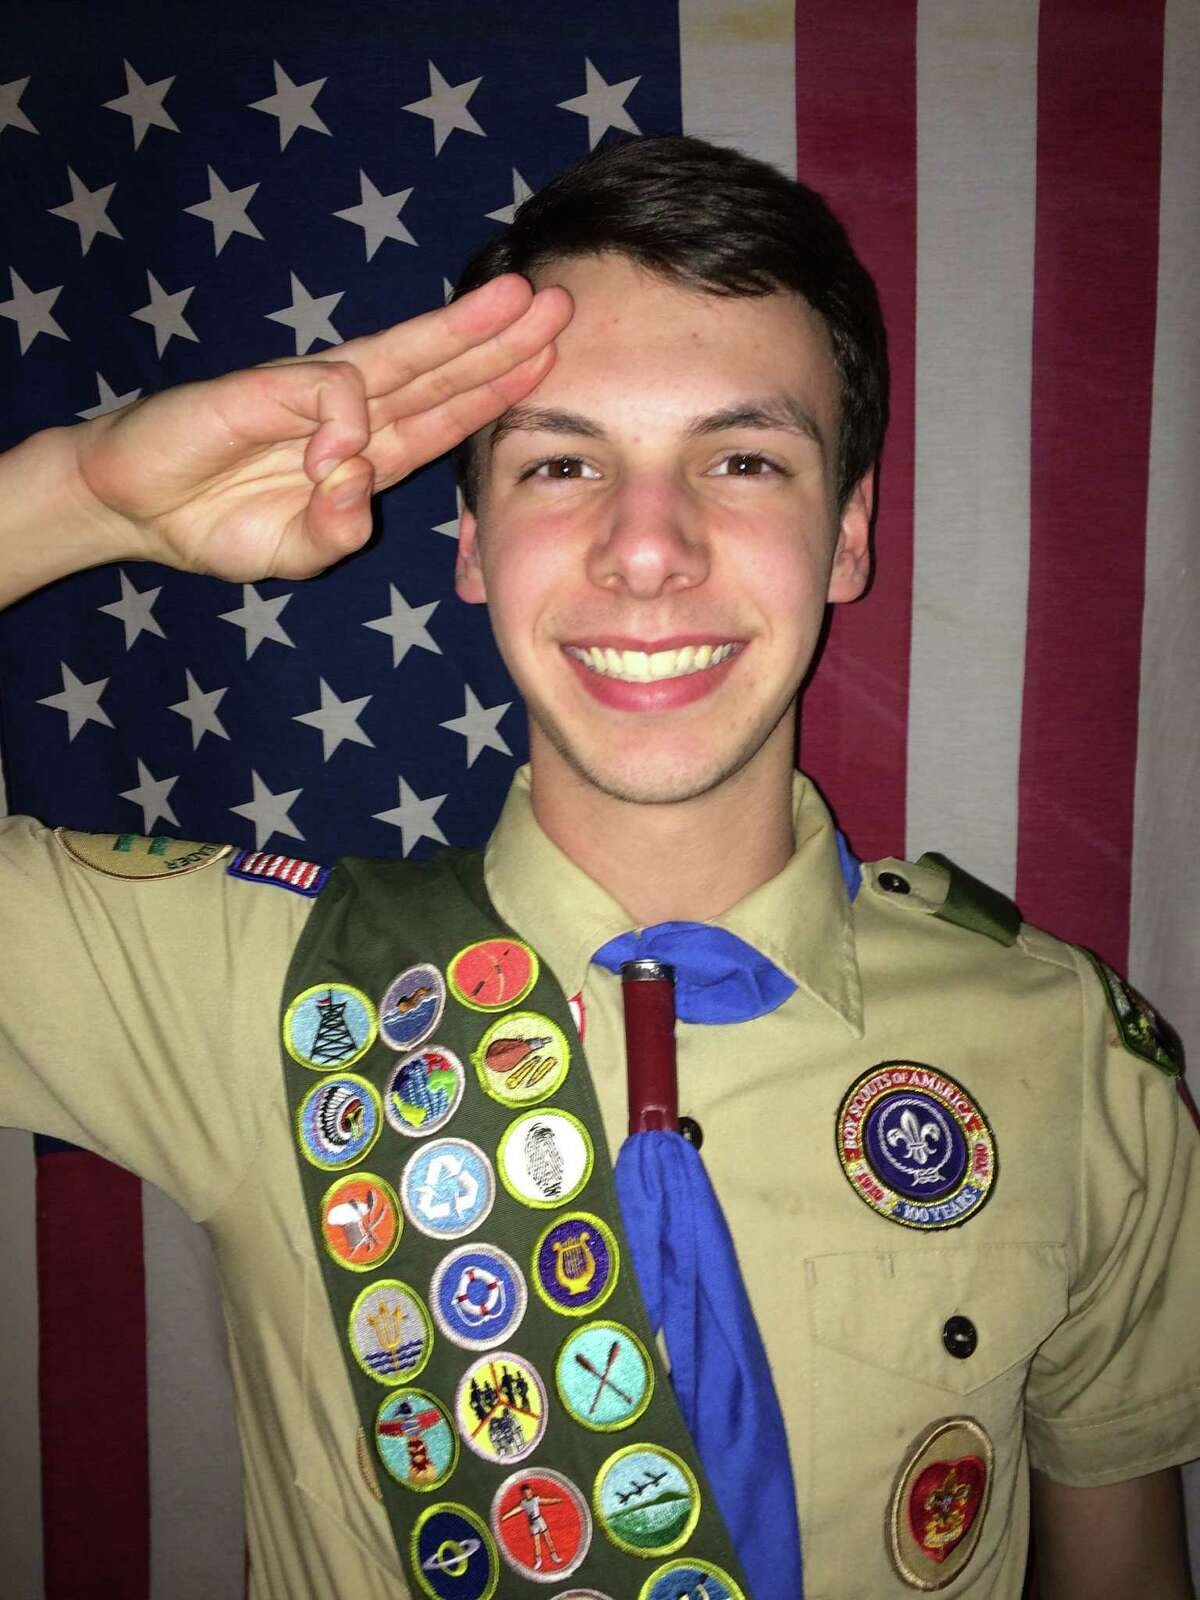 Colonie Central senior John Cogan of Christ Our Light Troop 1022 earned the rank of Eagle Scout for overseeing construction of a portable 18-hole miniature golf course for the High School. The course is used as a fundraiser for Colonie Central's RaiderFest and is available for other schools in the South Colonie District. (Photo credit: Stephanie Cogan)